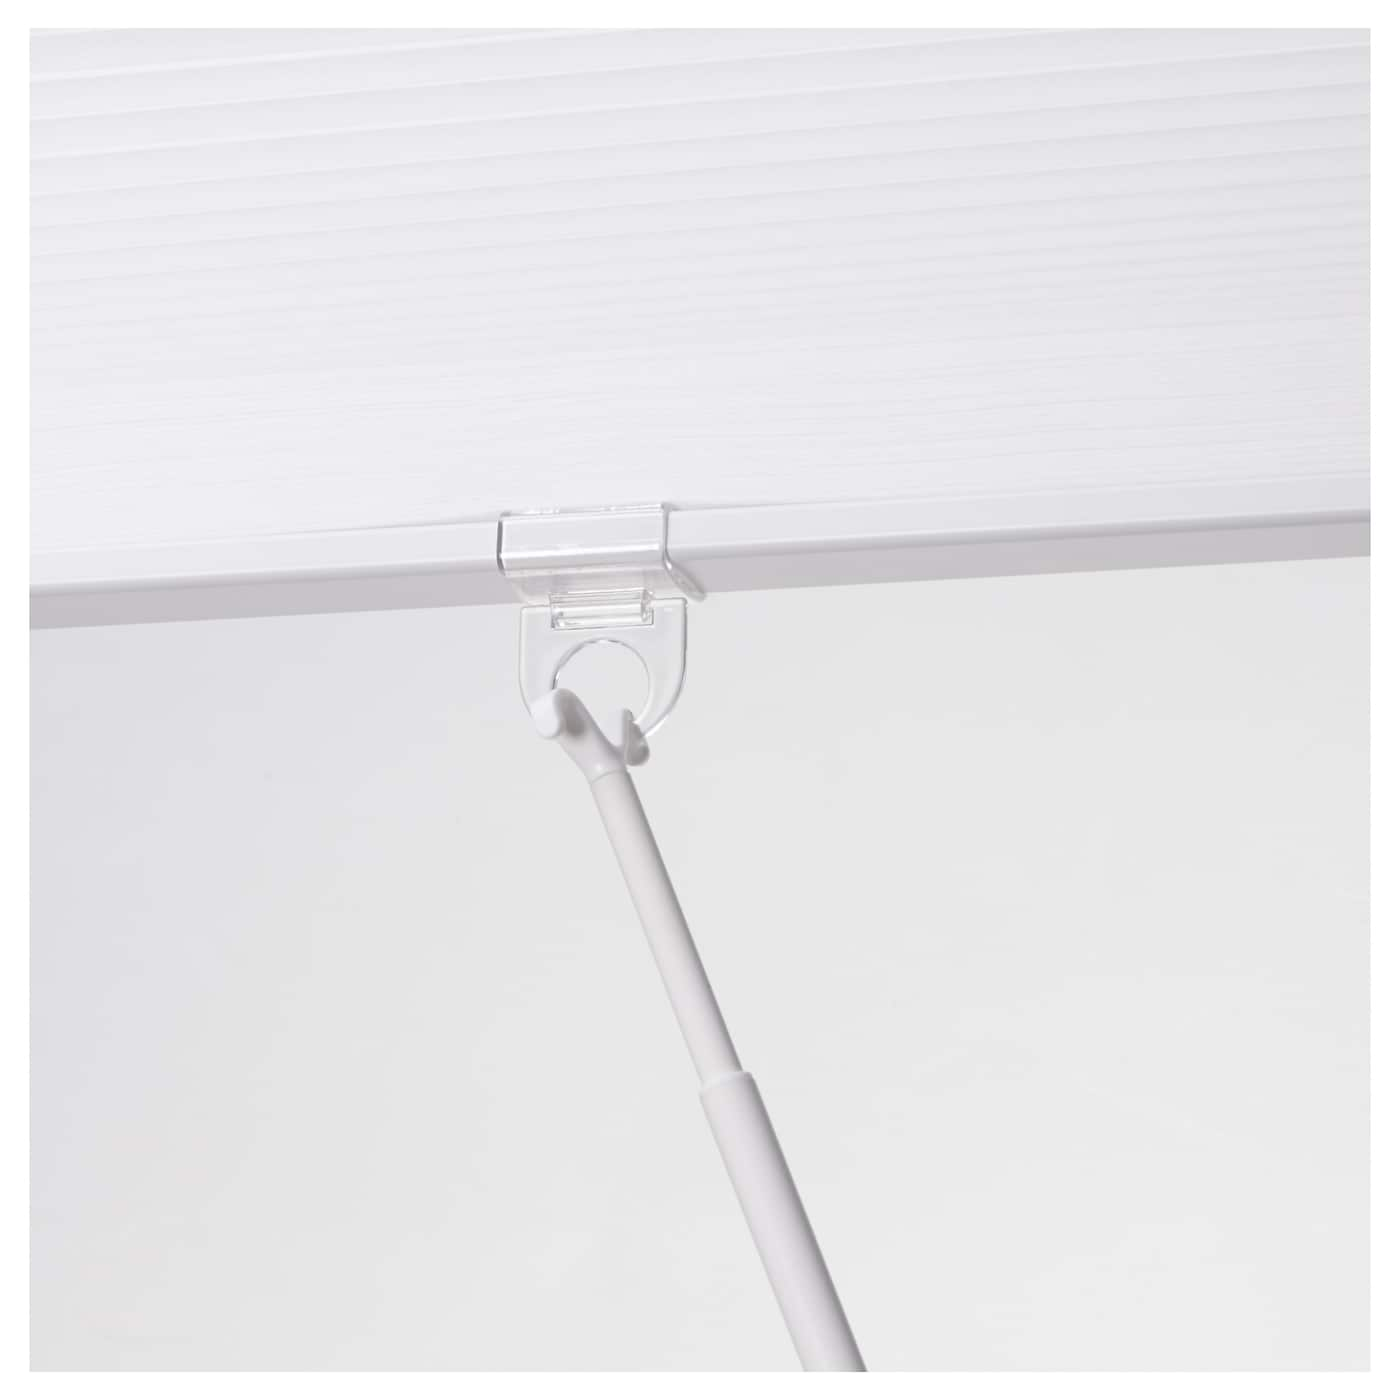 IKEA RIKTIG draw rod Makes it easy to pull down or push up a cordless roller blind.